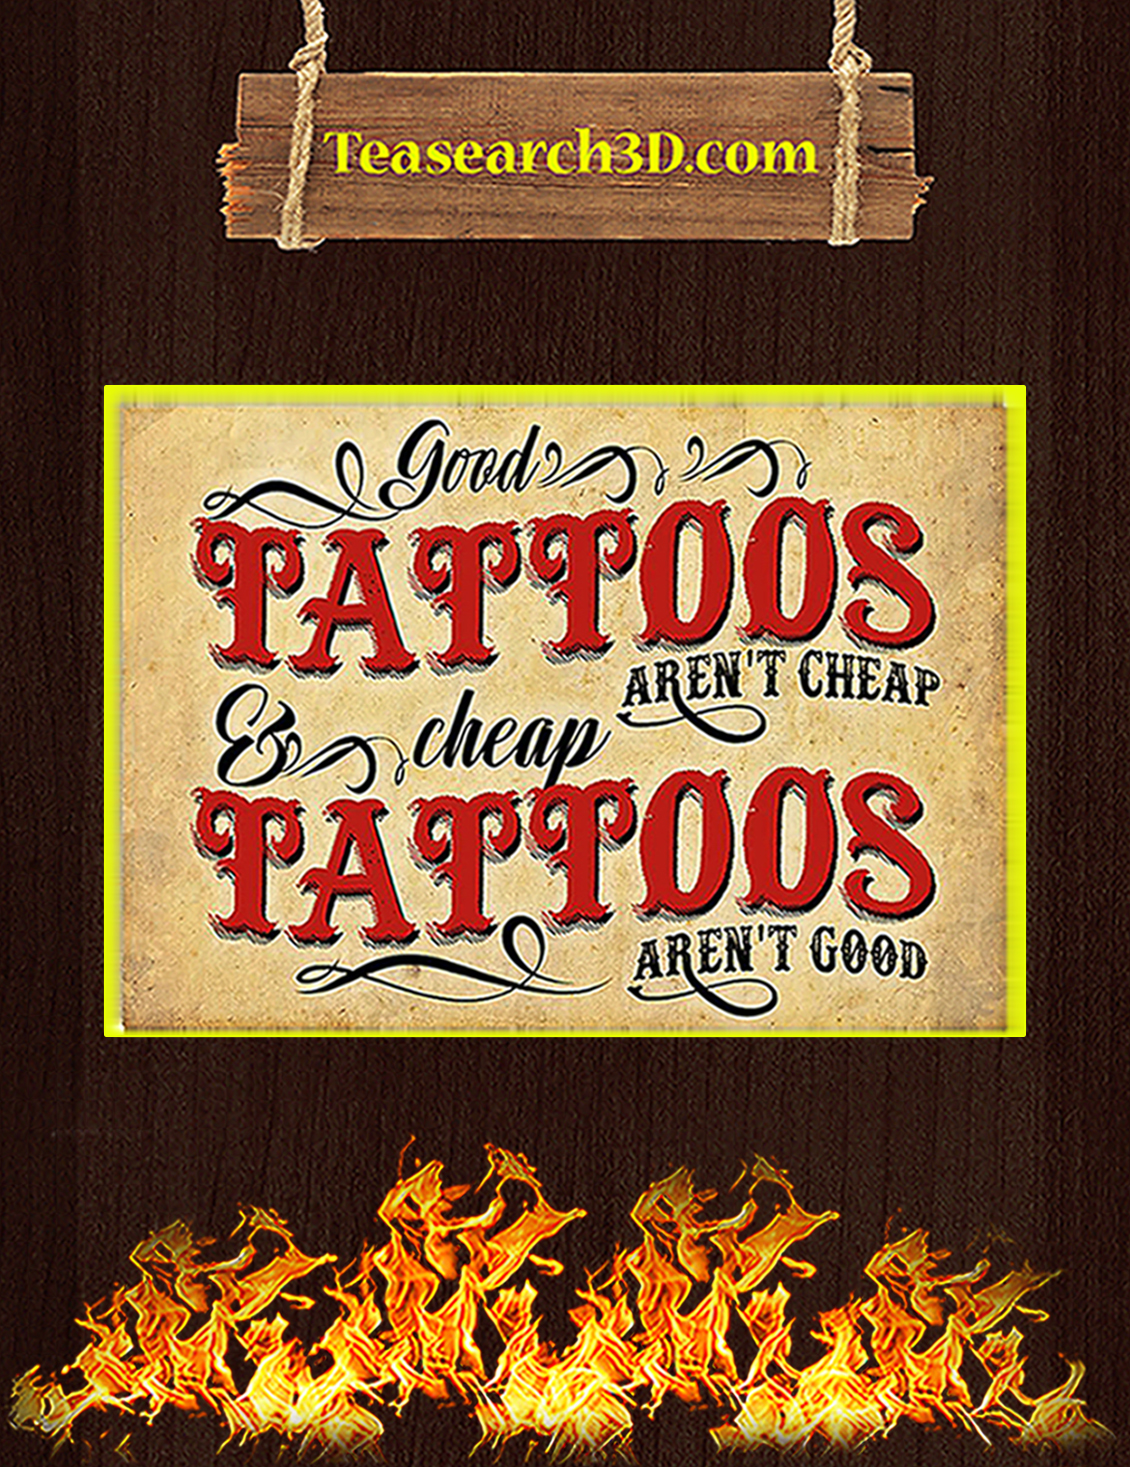 Good tattoos aren't cheap cheap tattoos aren't good poster A3